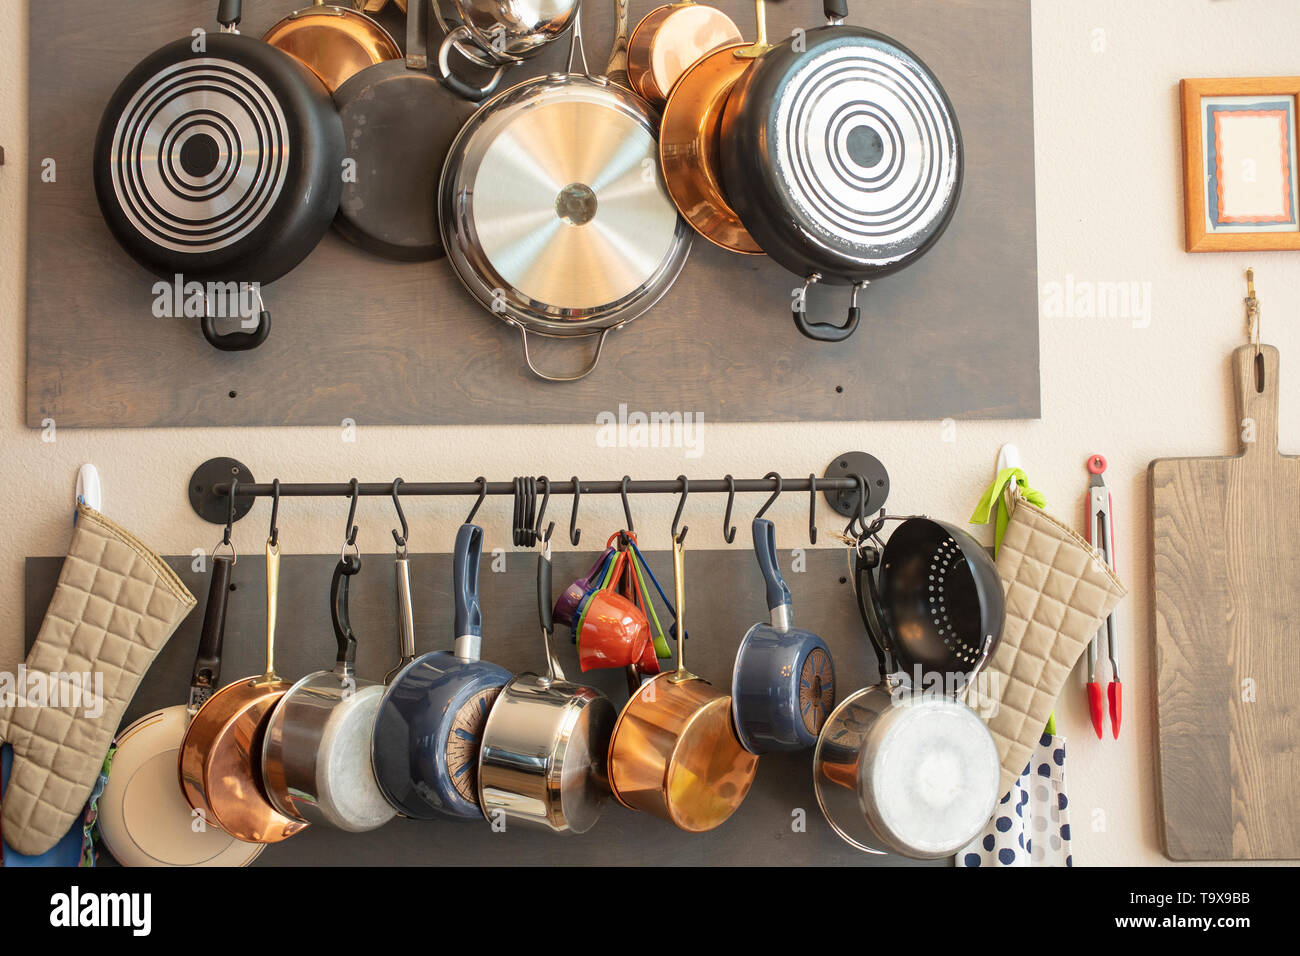 Kitchen wall rack for hanging pots, pans, aprons, and other ...